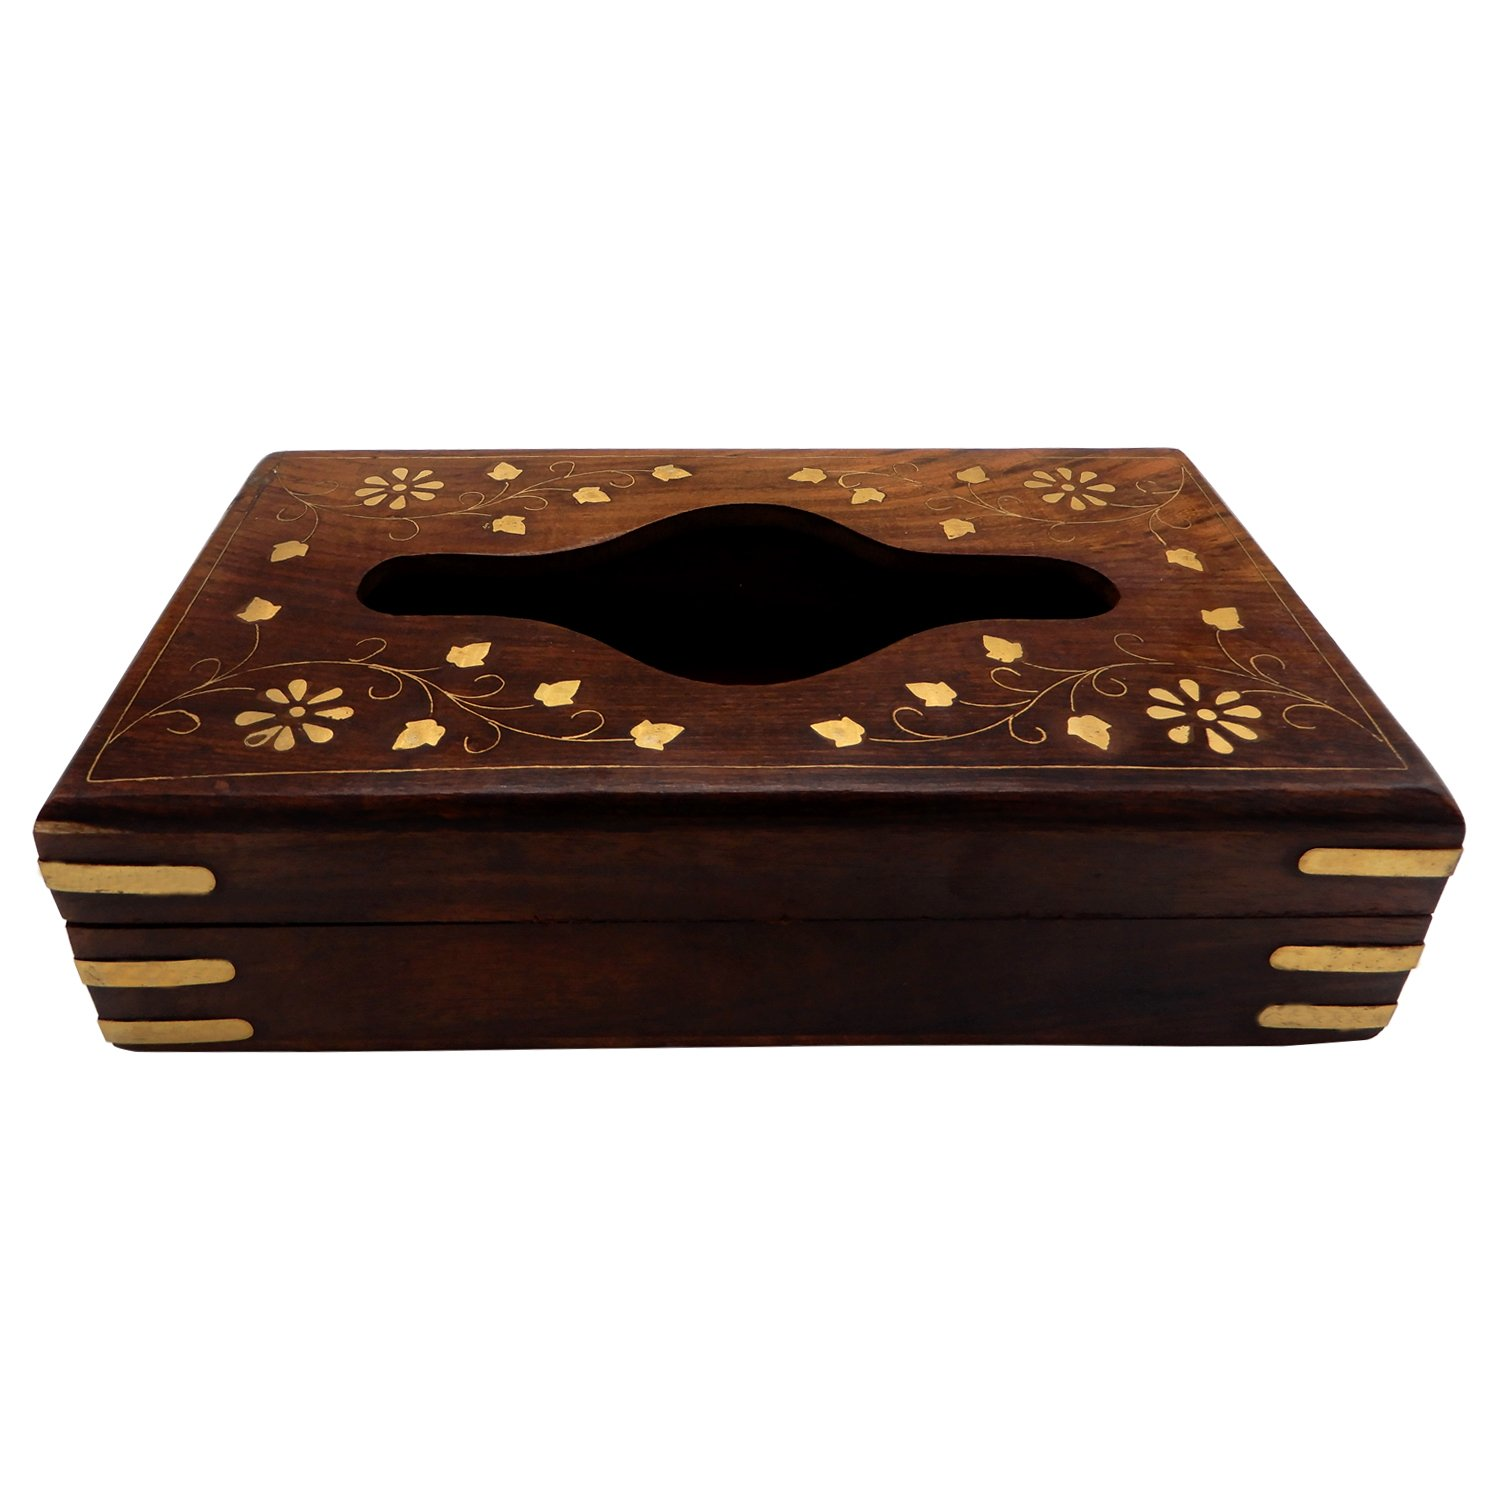 IndiaBigShop Hand Crafted Wooden Large Tissue Box Holder With Decorative Brass Inlay Design For Tissue Organising Purpose 9 Inch